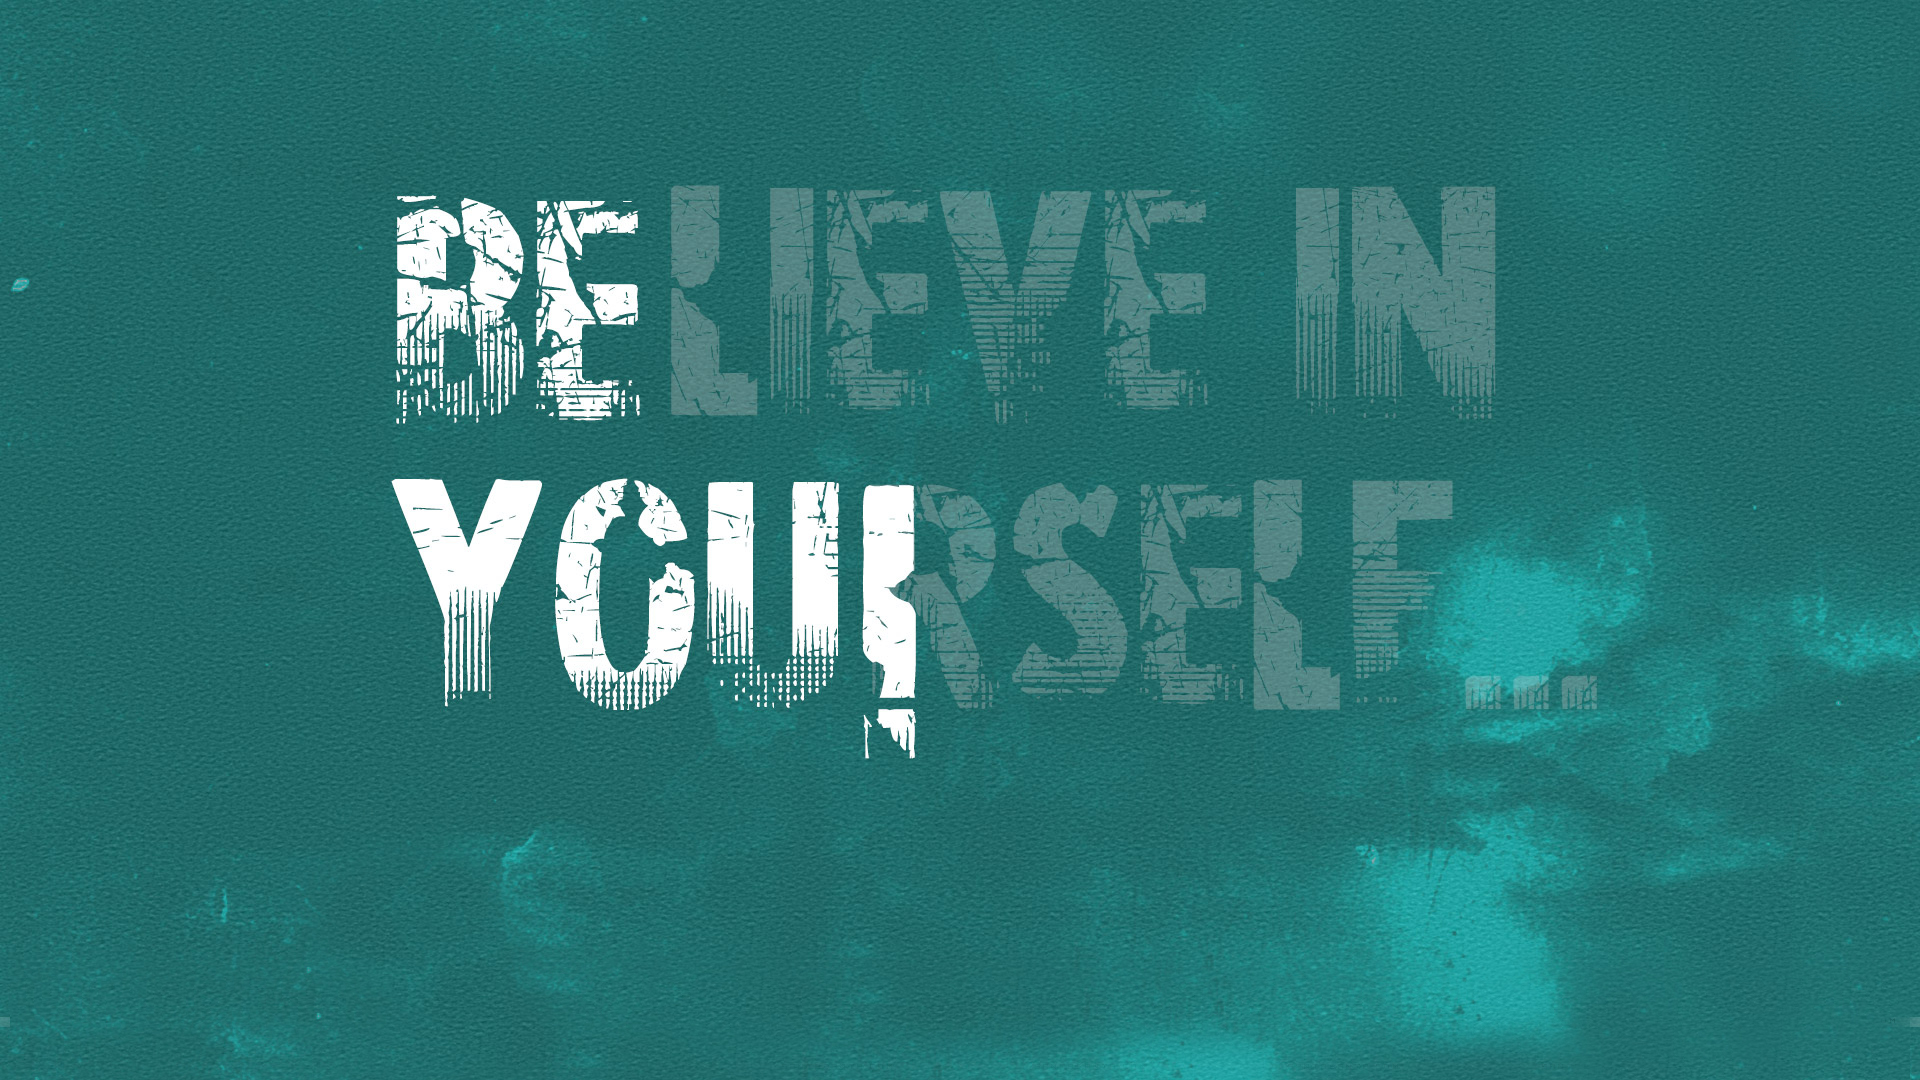 motivational wallpaper believe in you